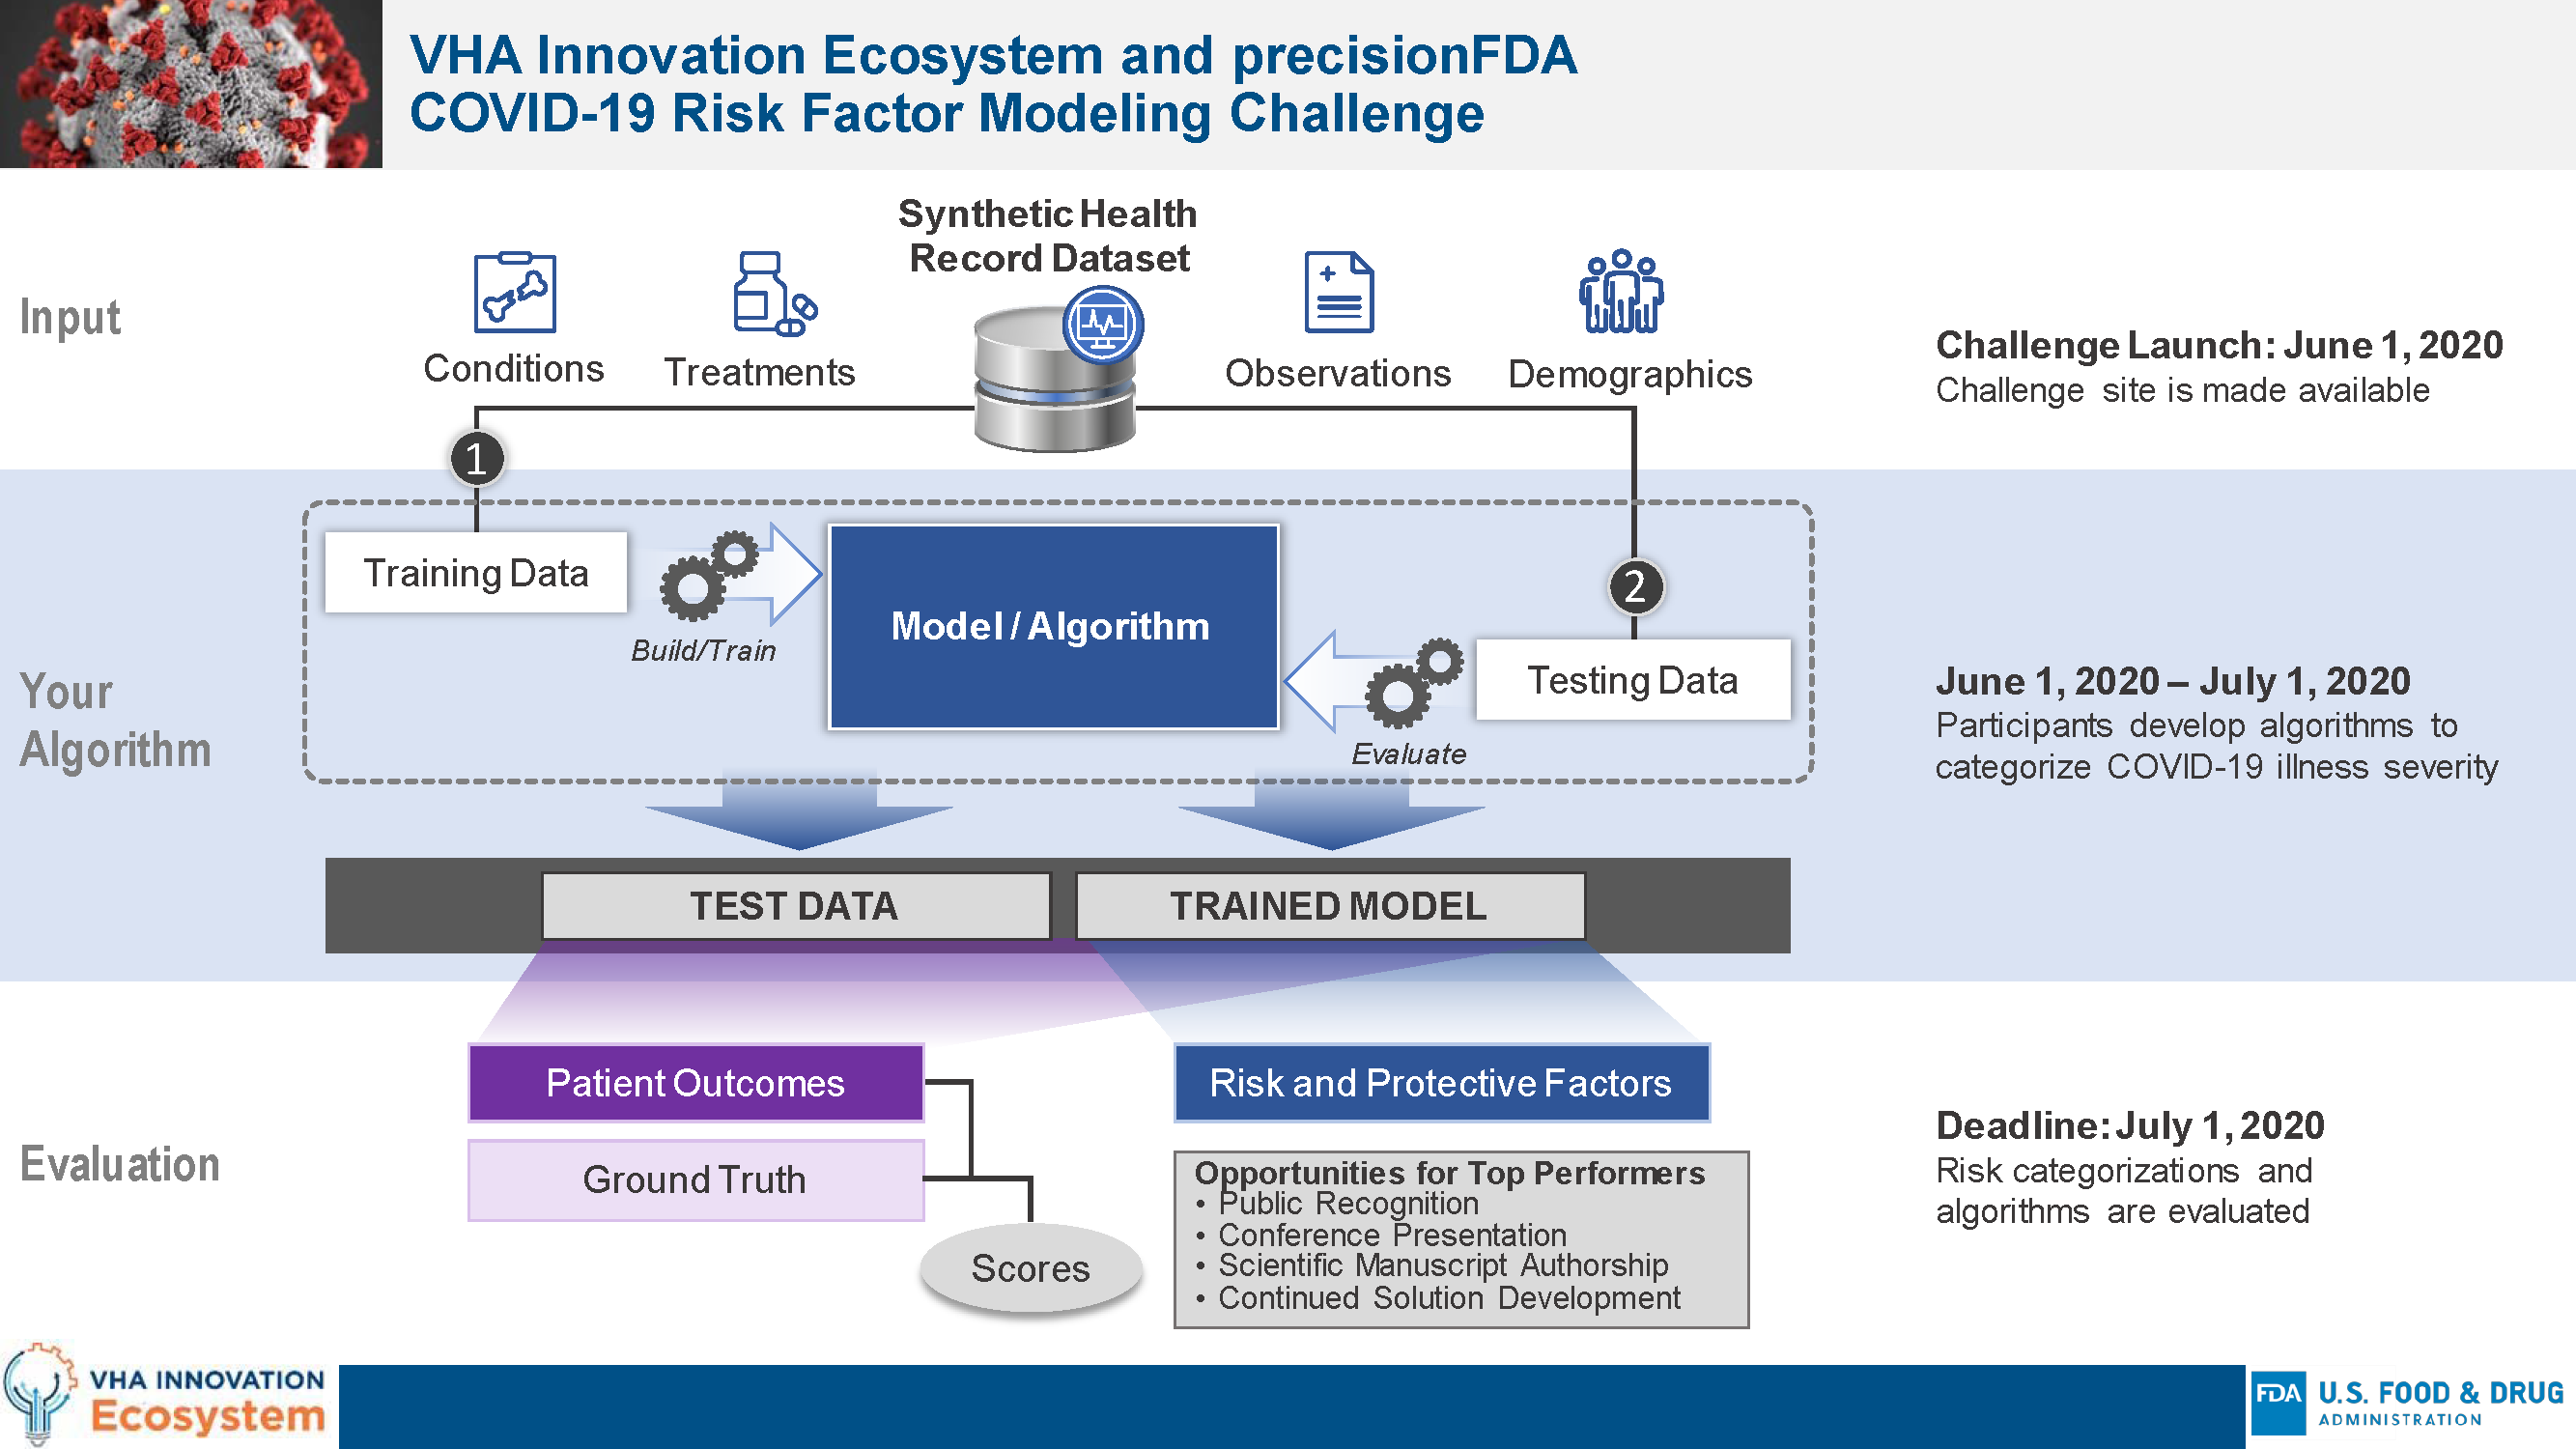 VHA Innovation Ecosystem and precisionFDA COVID-19 Risk Factor Modeling Challenge